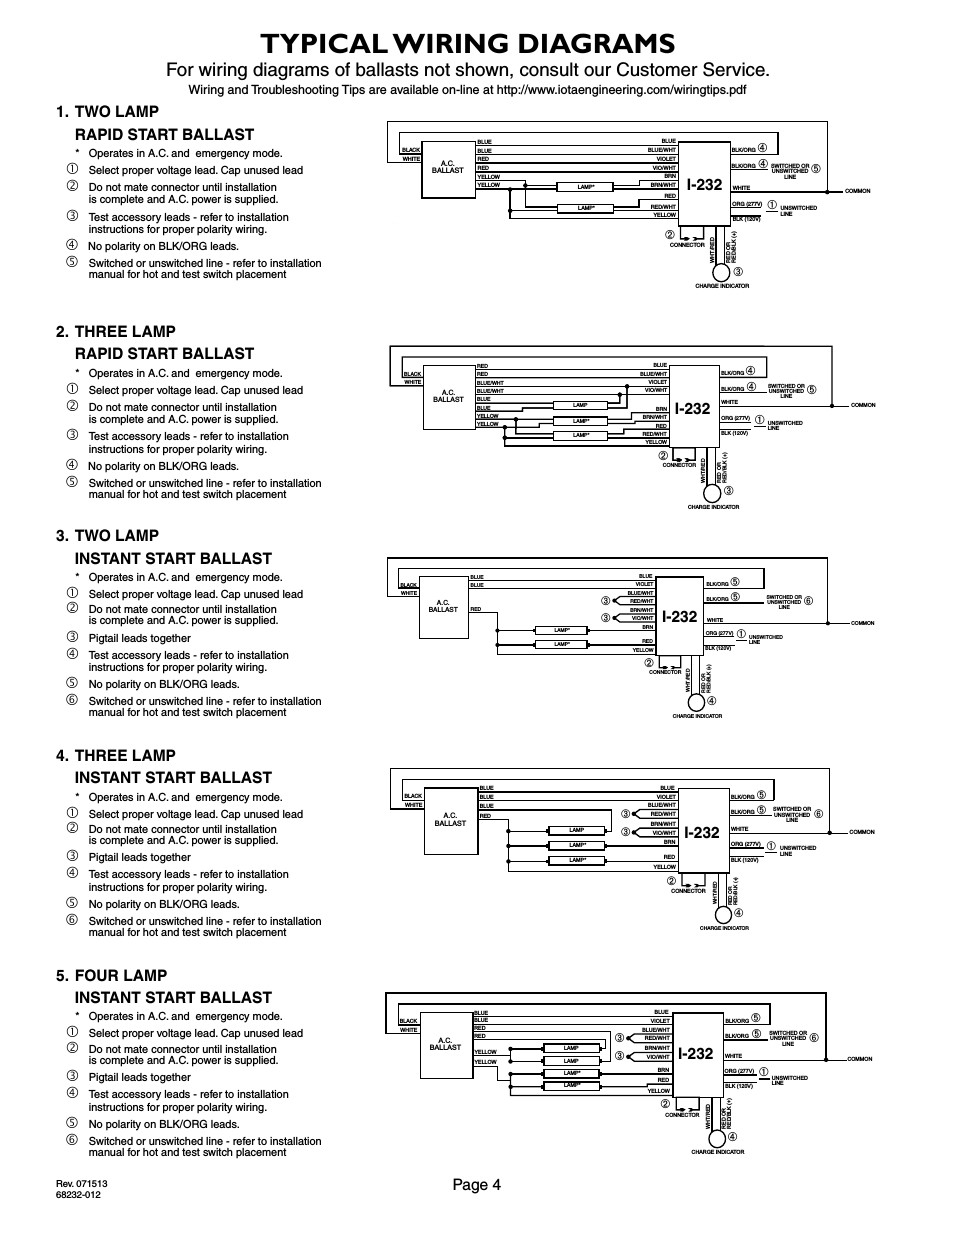 iota emergency ballast wiring diagram wire center \u2022